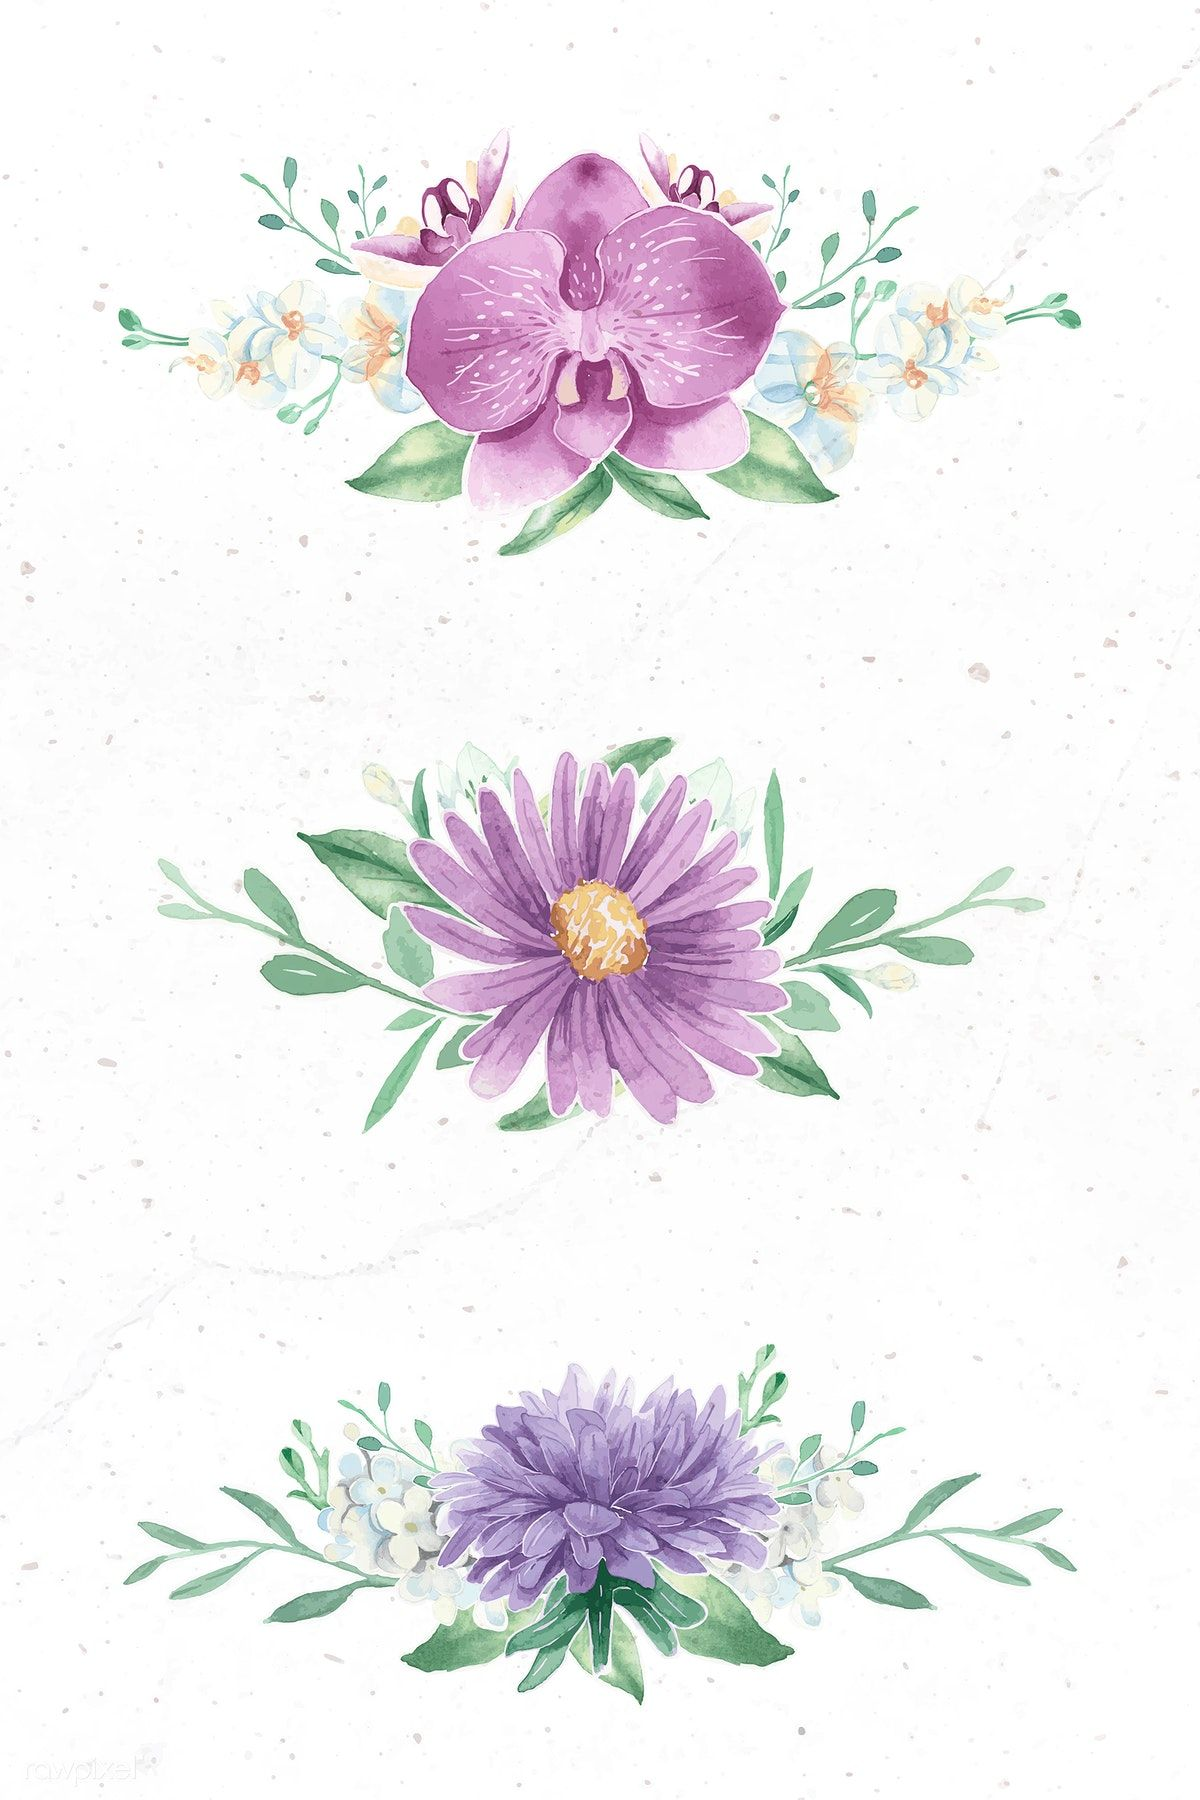 Download Premium Vector Of Purple Flower Elements On White Background In 2020 Floral Watercolor Background Purple Flowers Flower Illustration